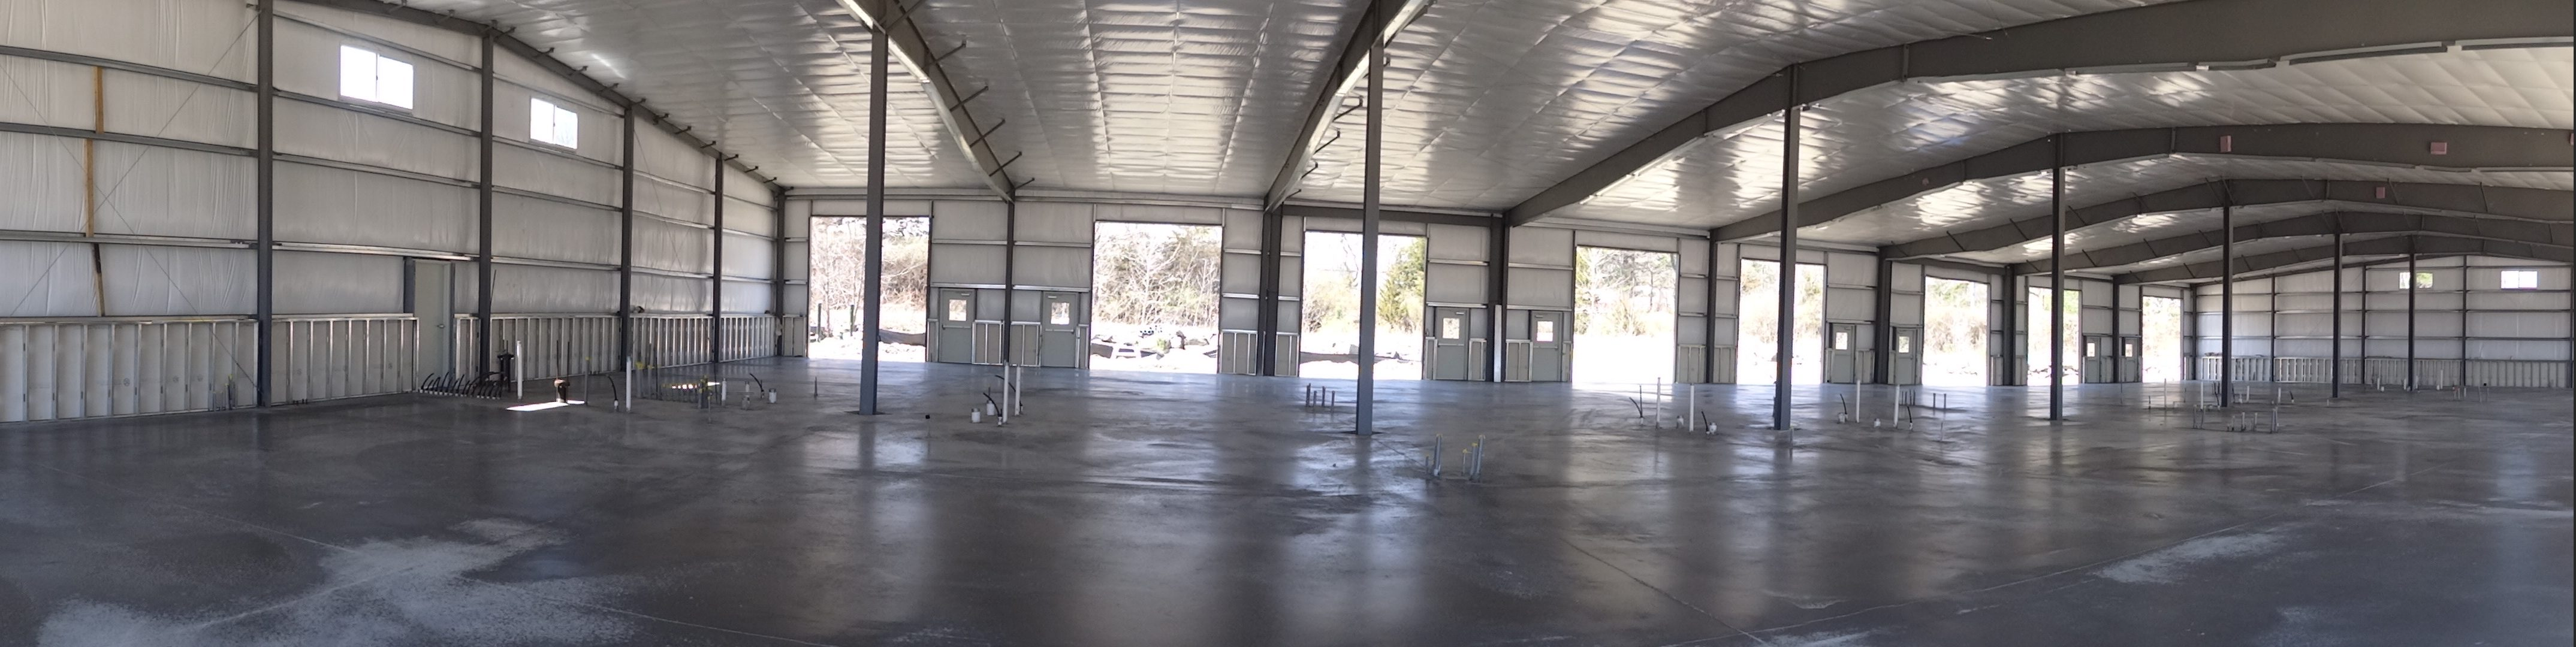 Panoramic interior shot with floor poured.